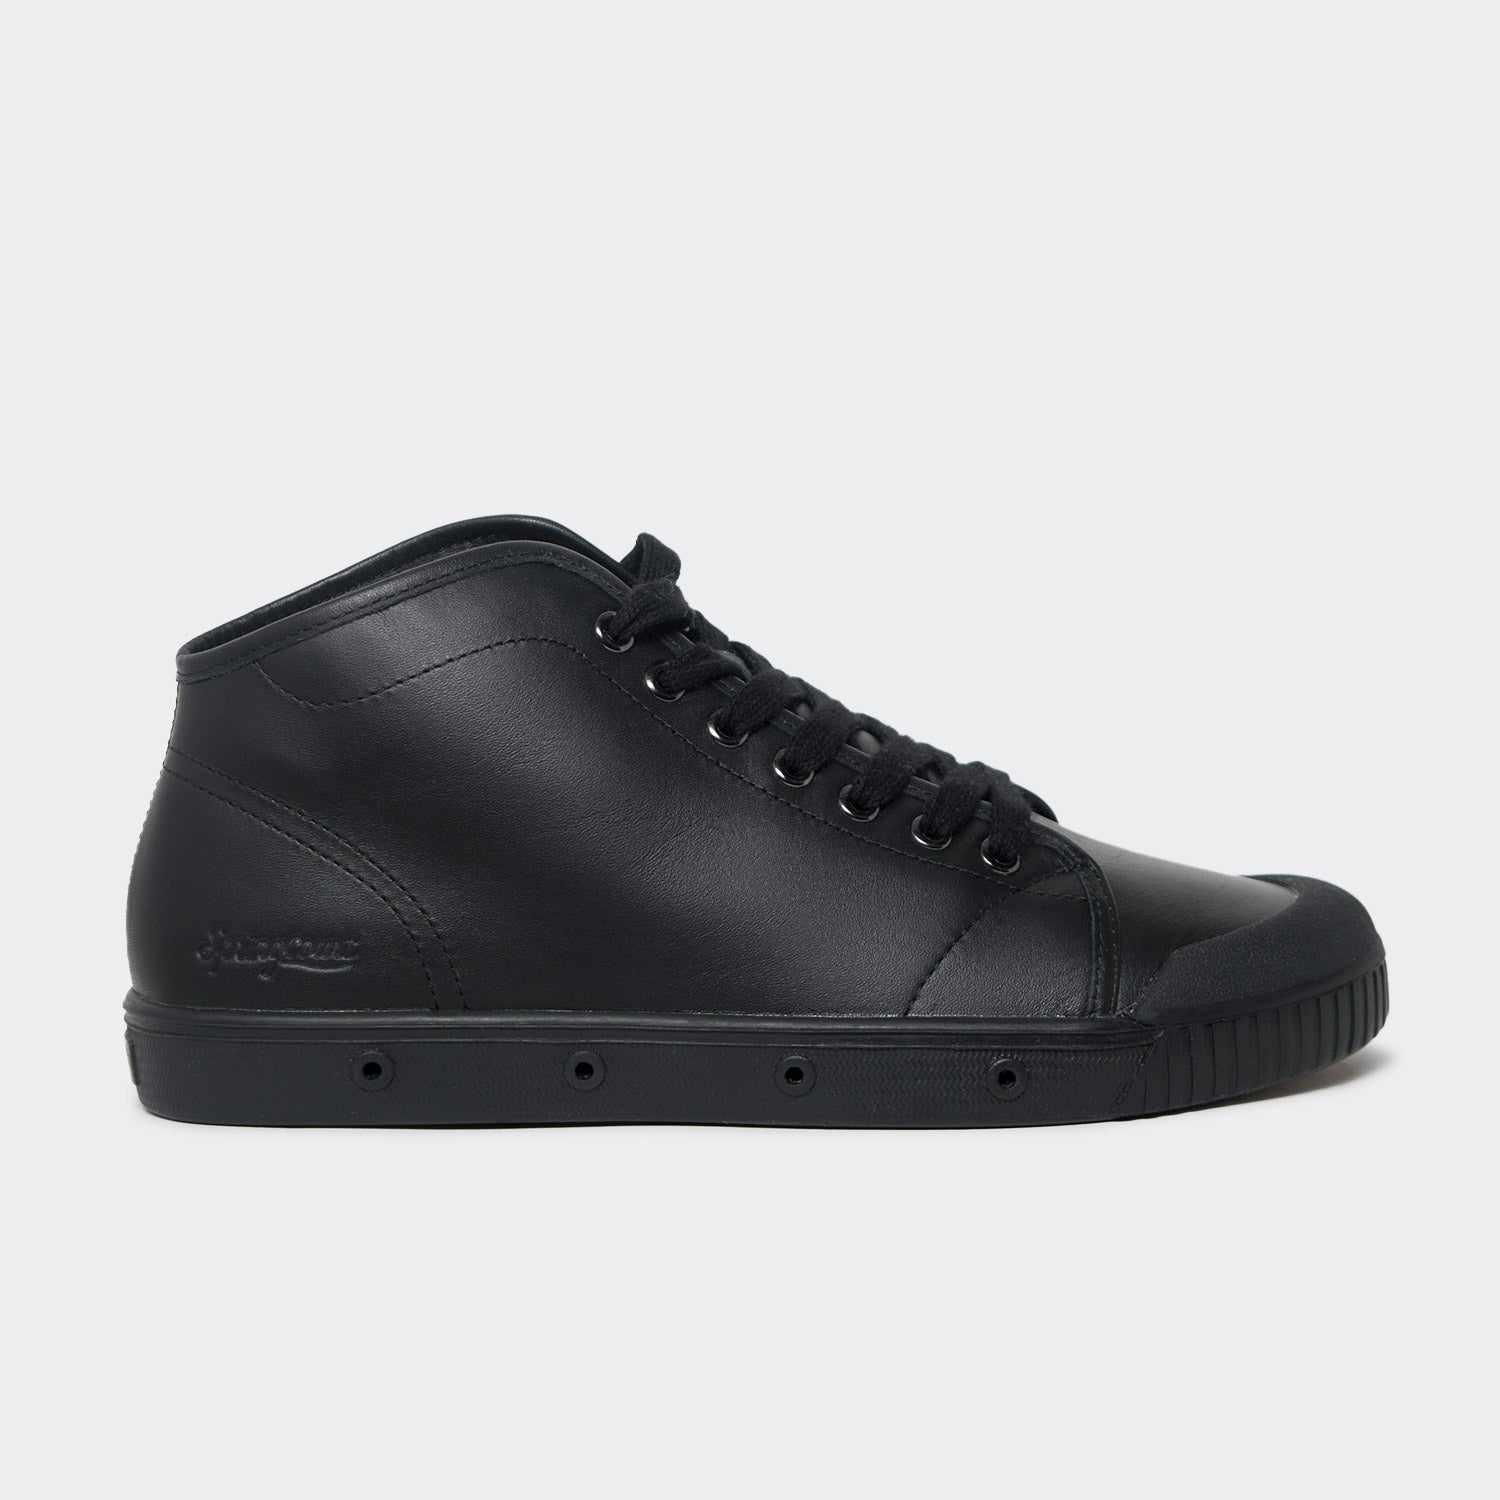 Spring Court B2 Classic Nappa Leather Shoes - Black  - CARTOCON